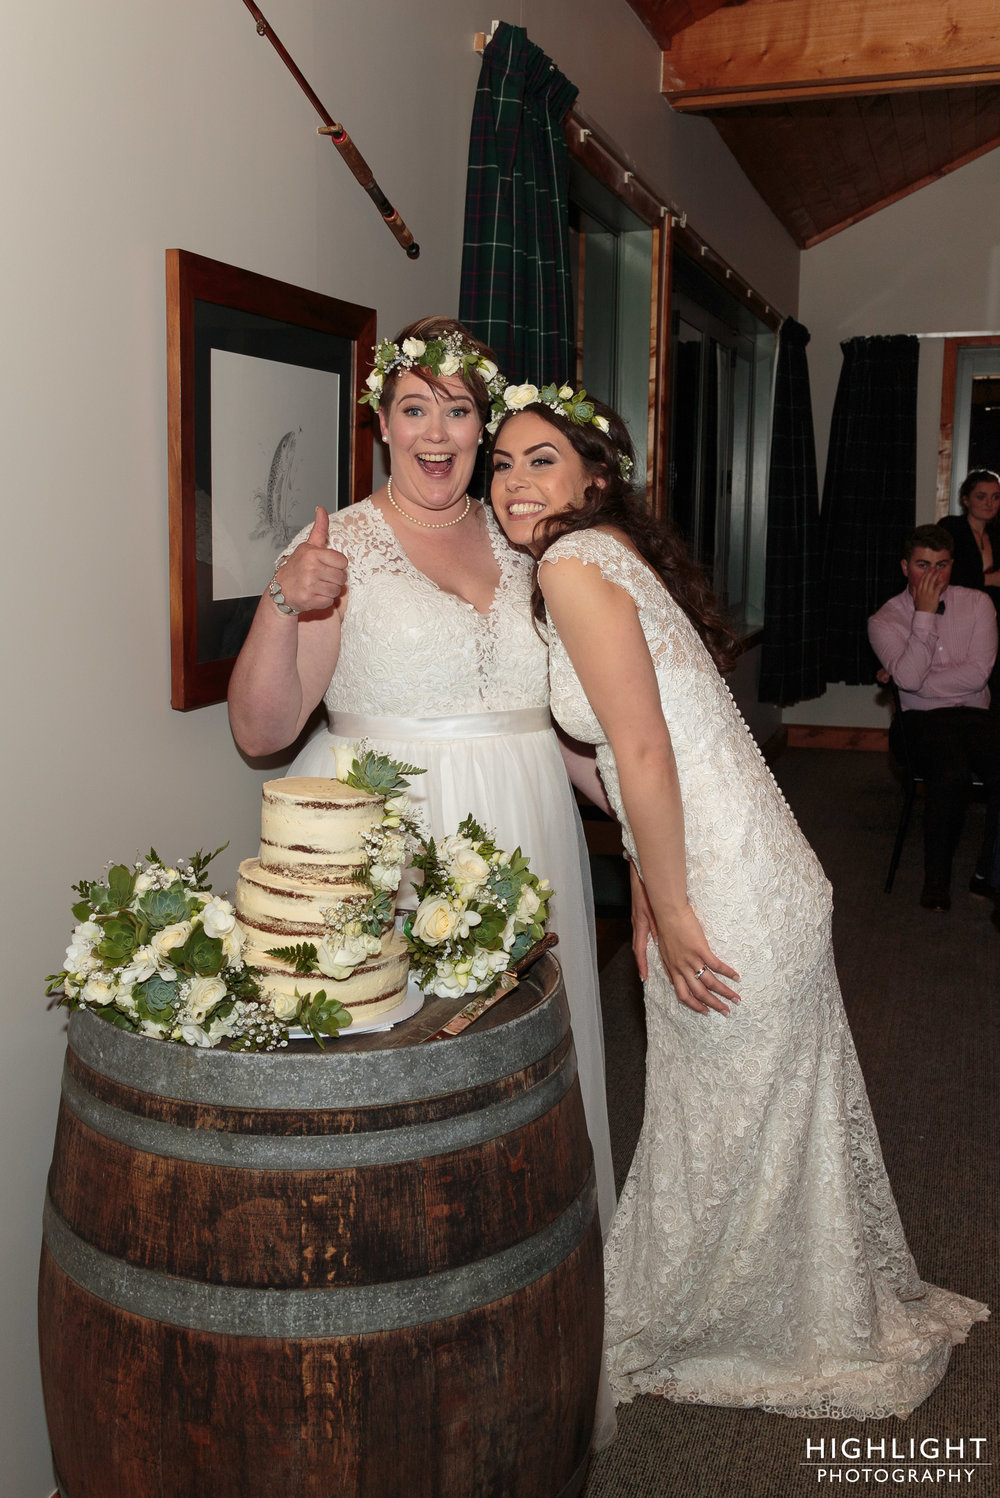 highlight_wedding_photography_makoura_lodge_manawatu_new_zealand-145.jpg